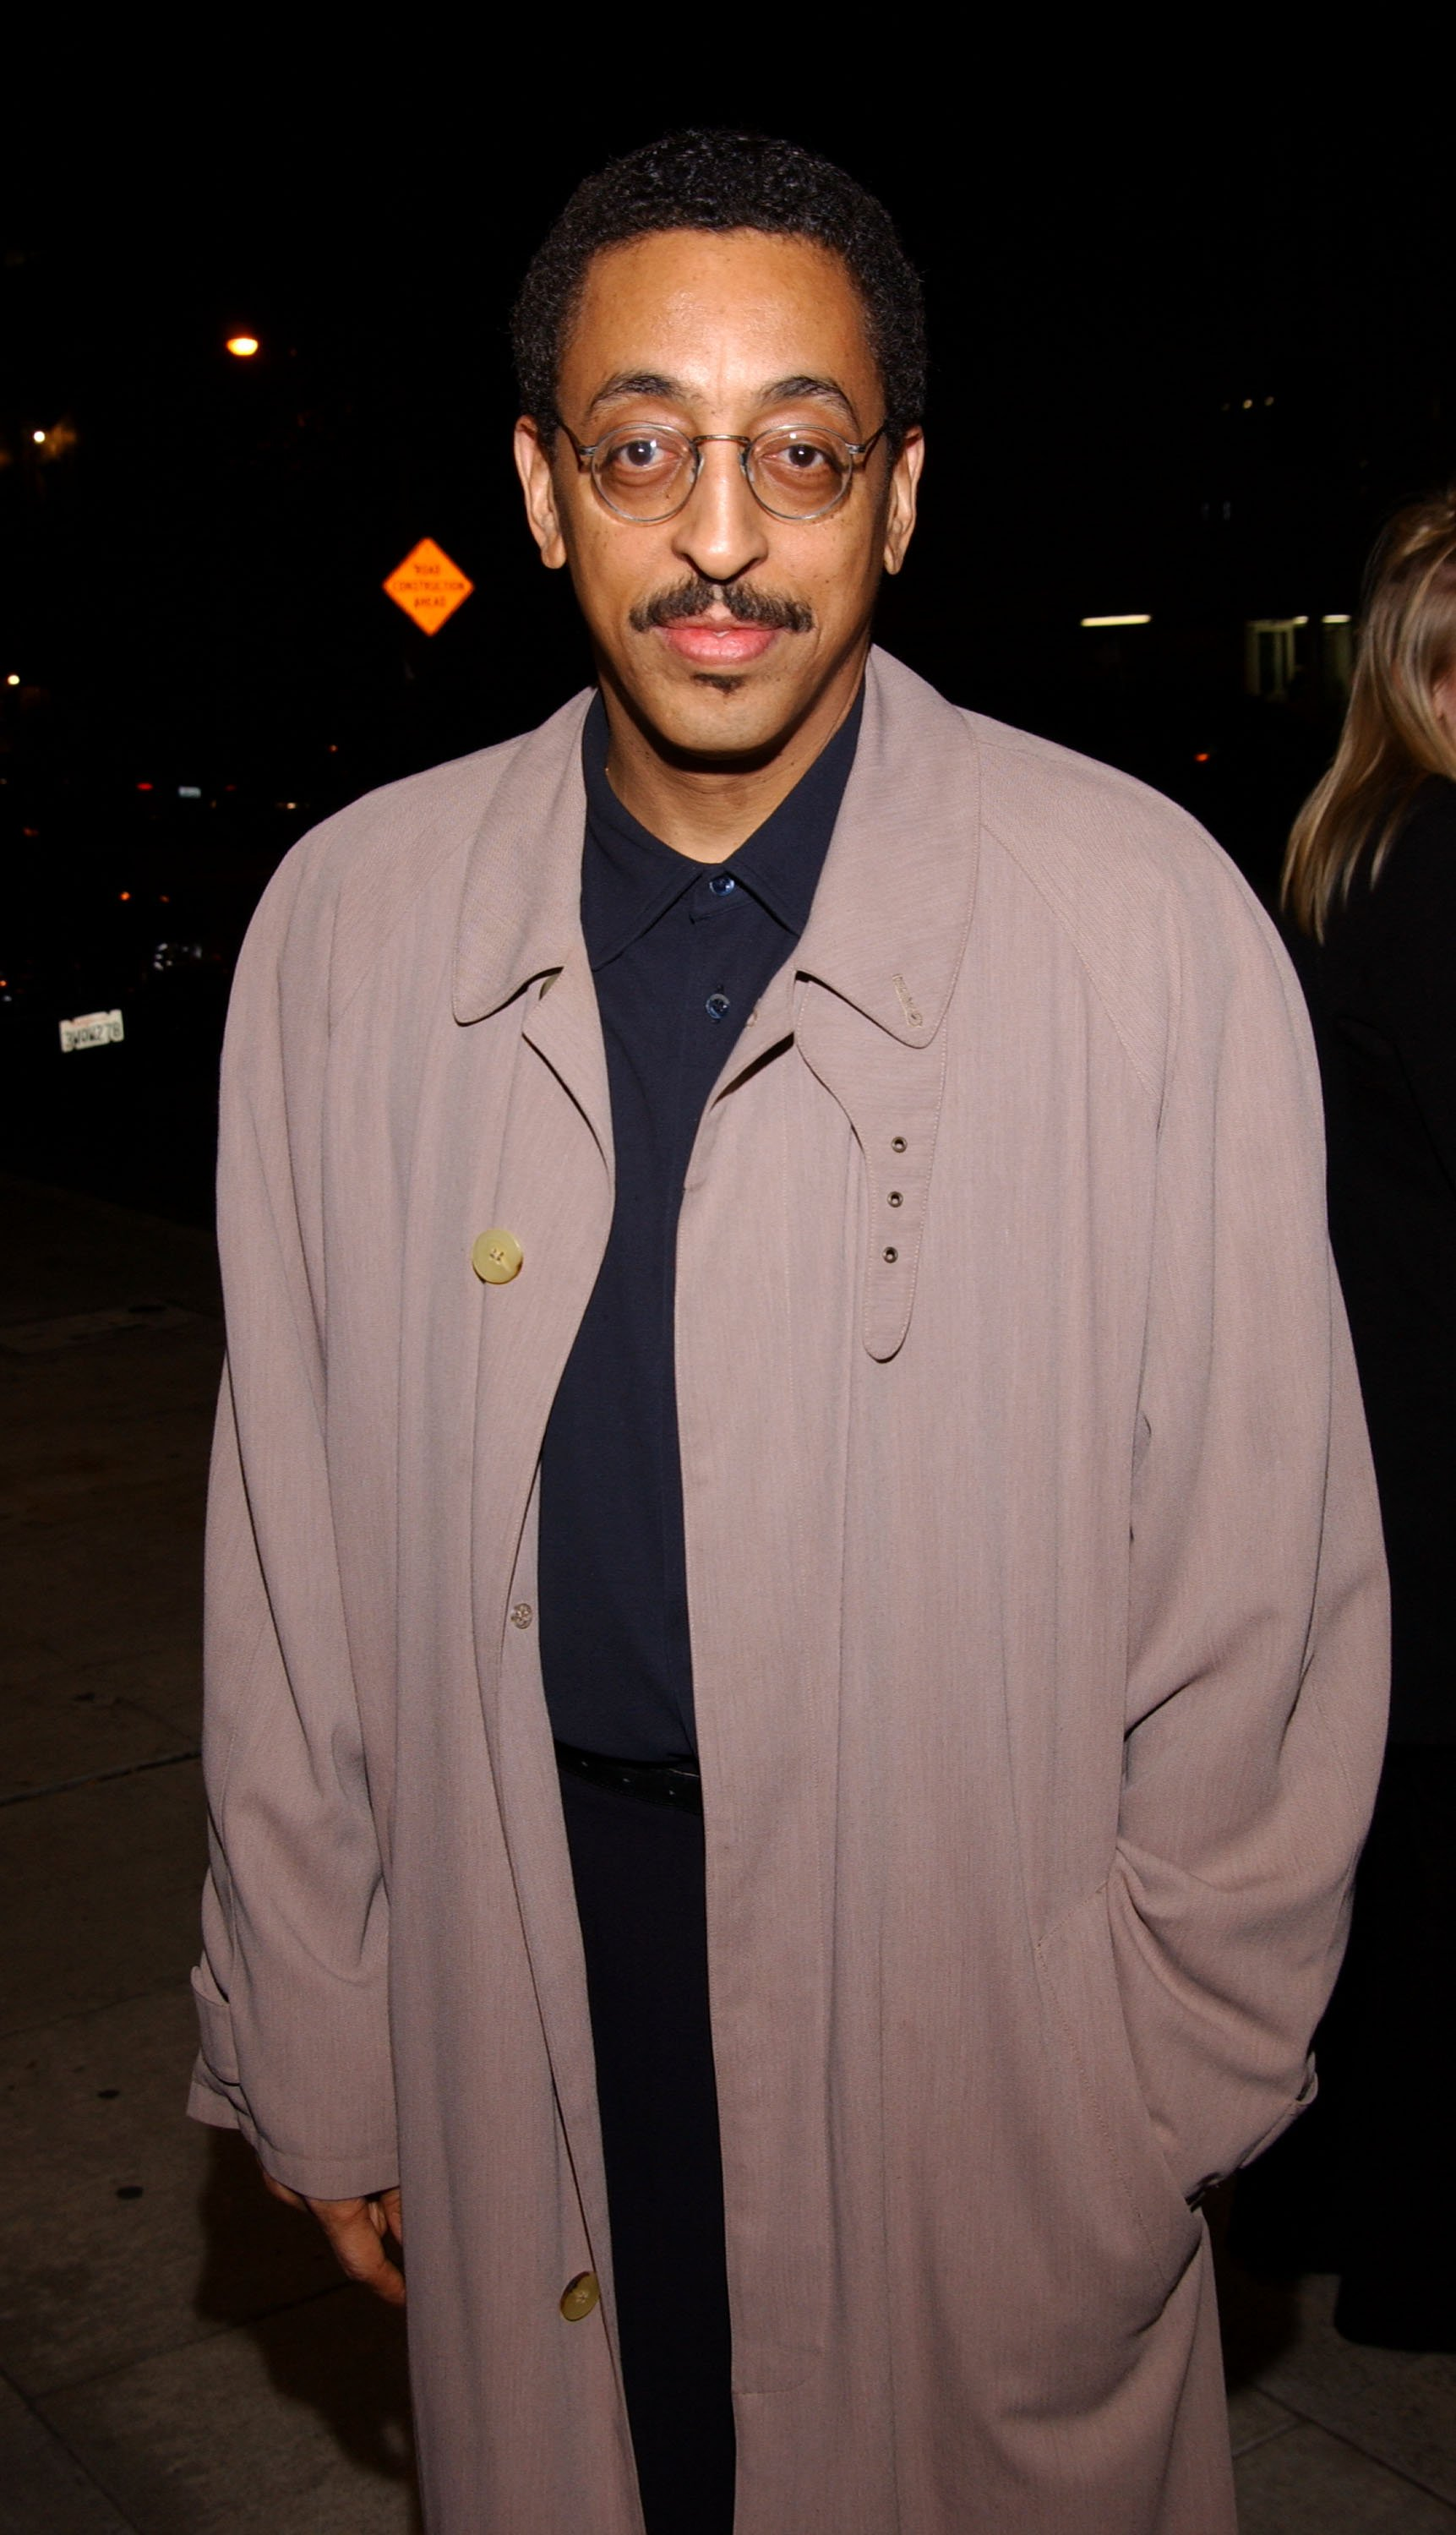 """Gregory Hines arrives at the premiere of Showtime's """"The Red Sneakers"""" on January 29, 2002. 